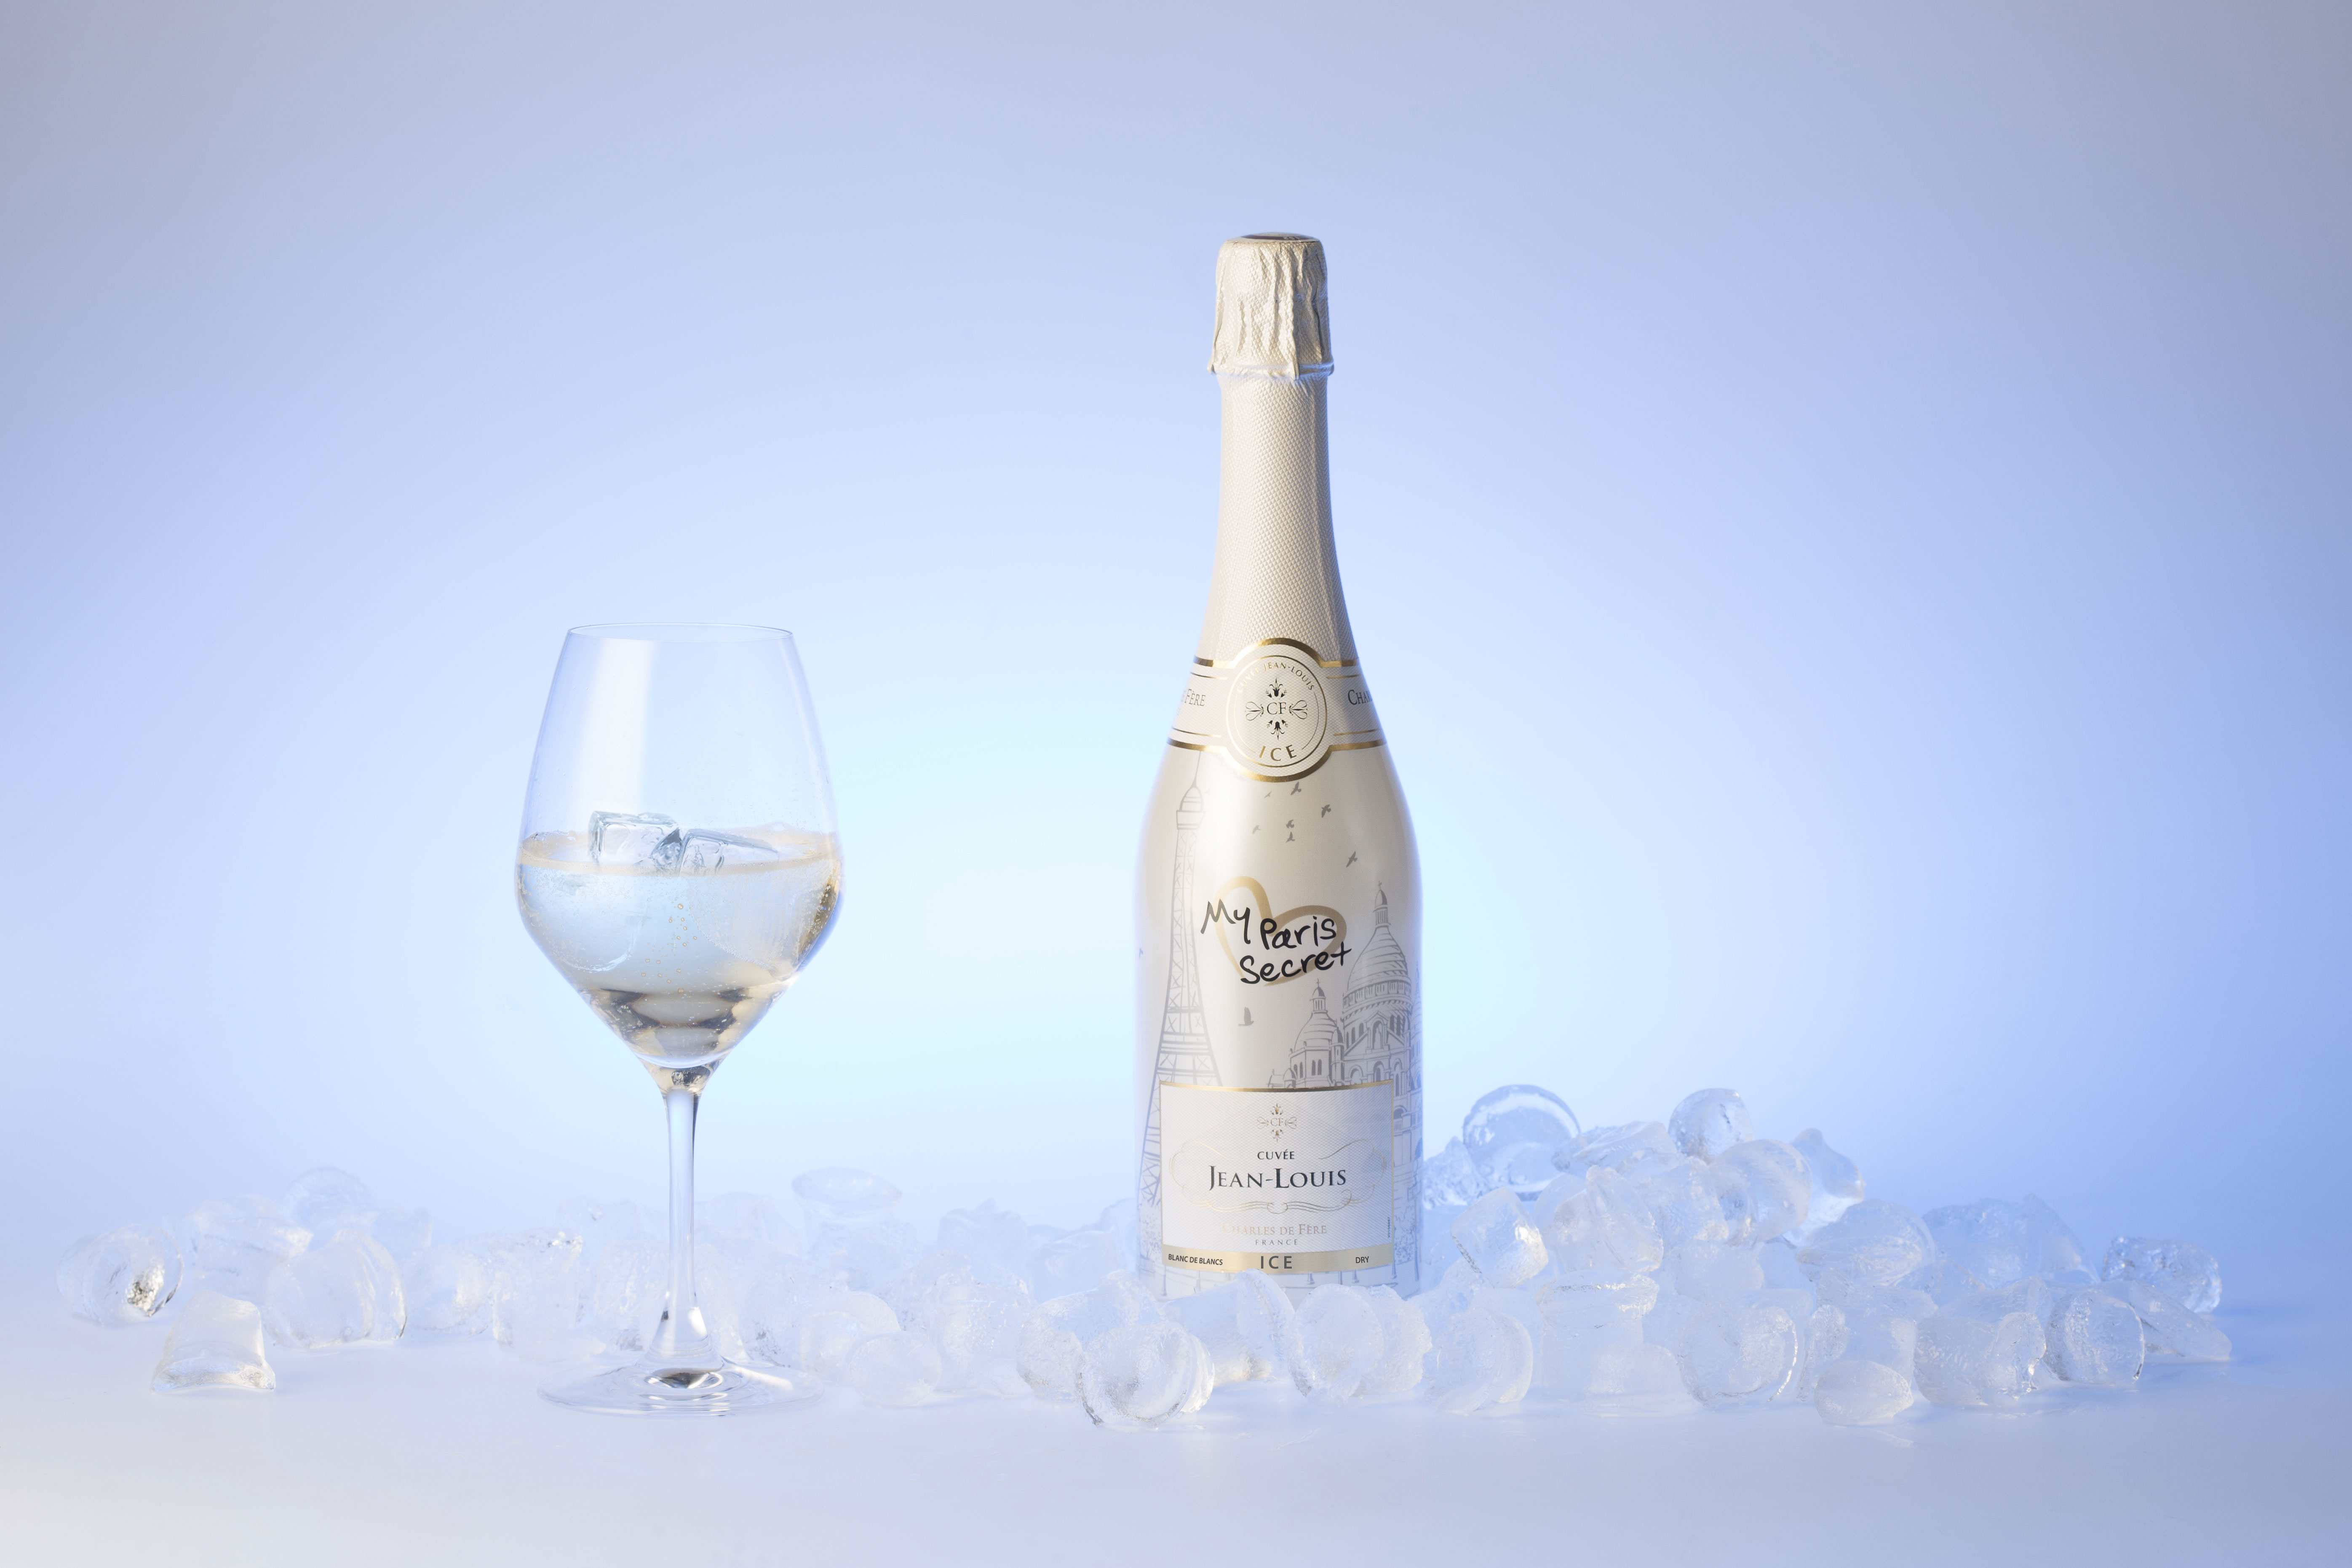 My Paris Secret Blanc de Blancs dry